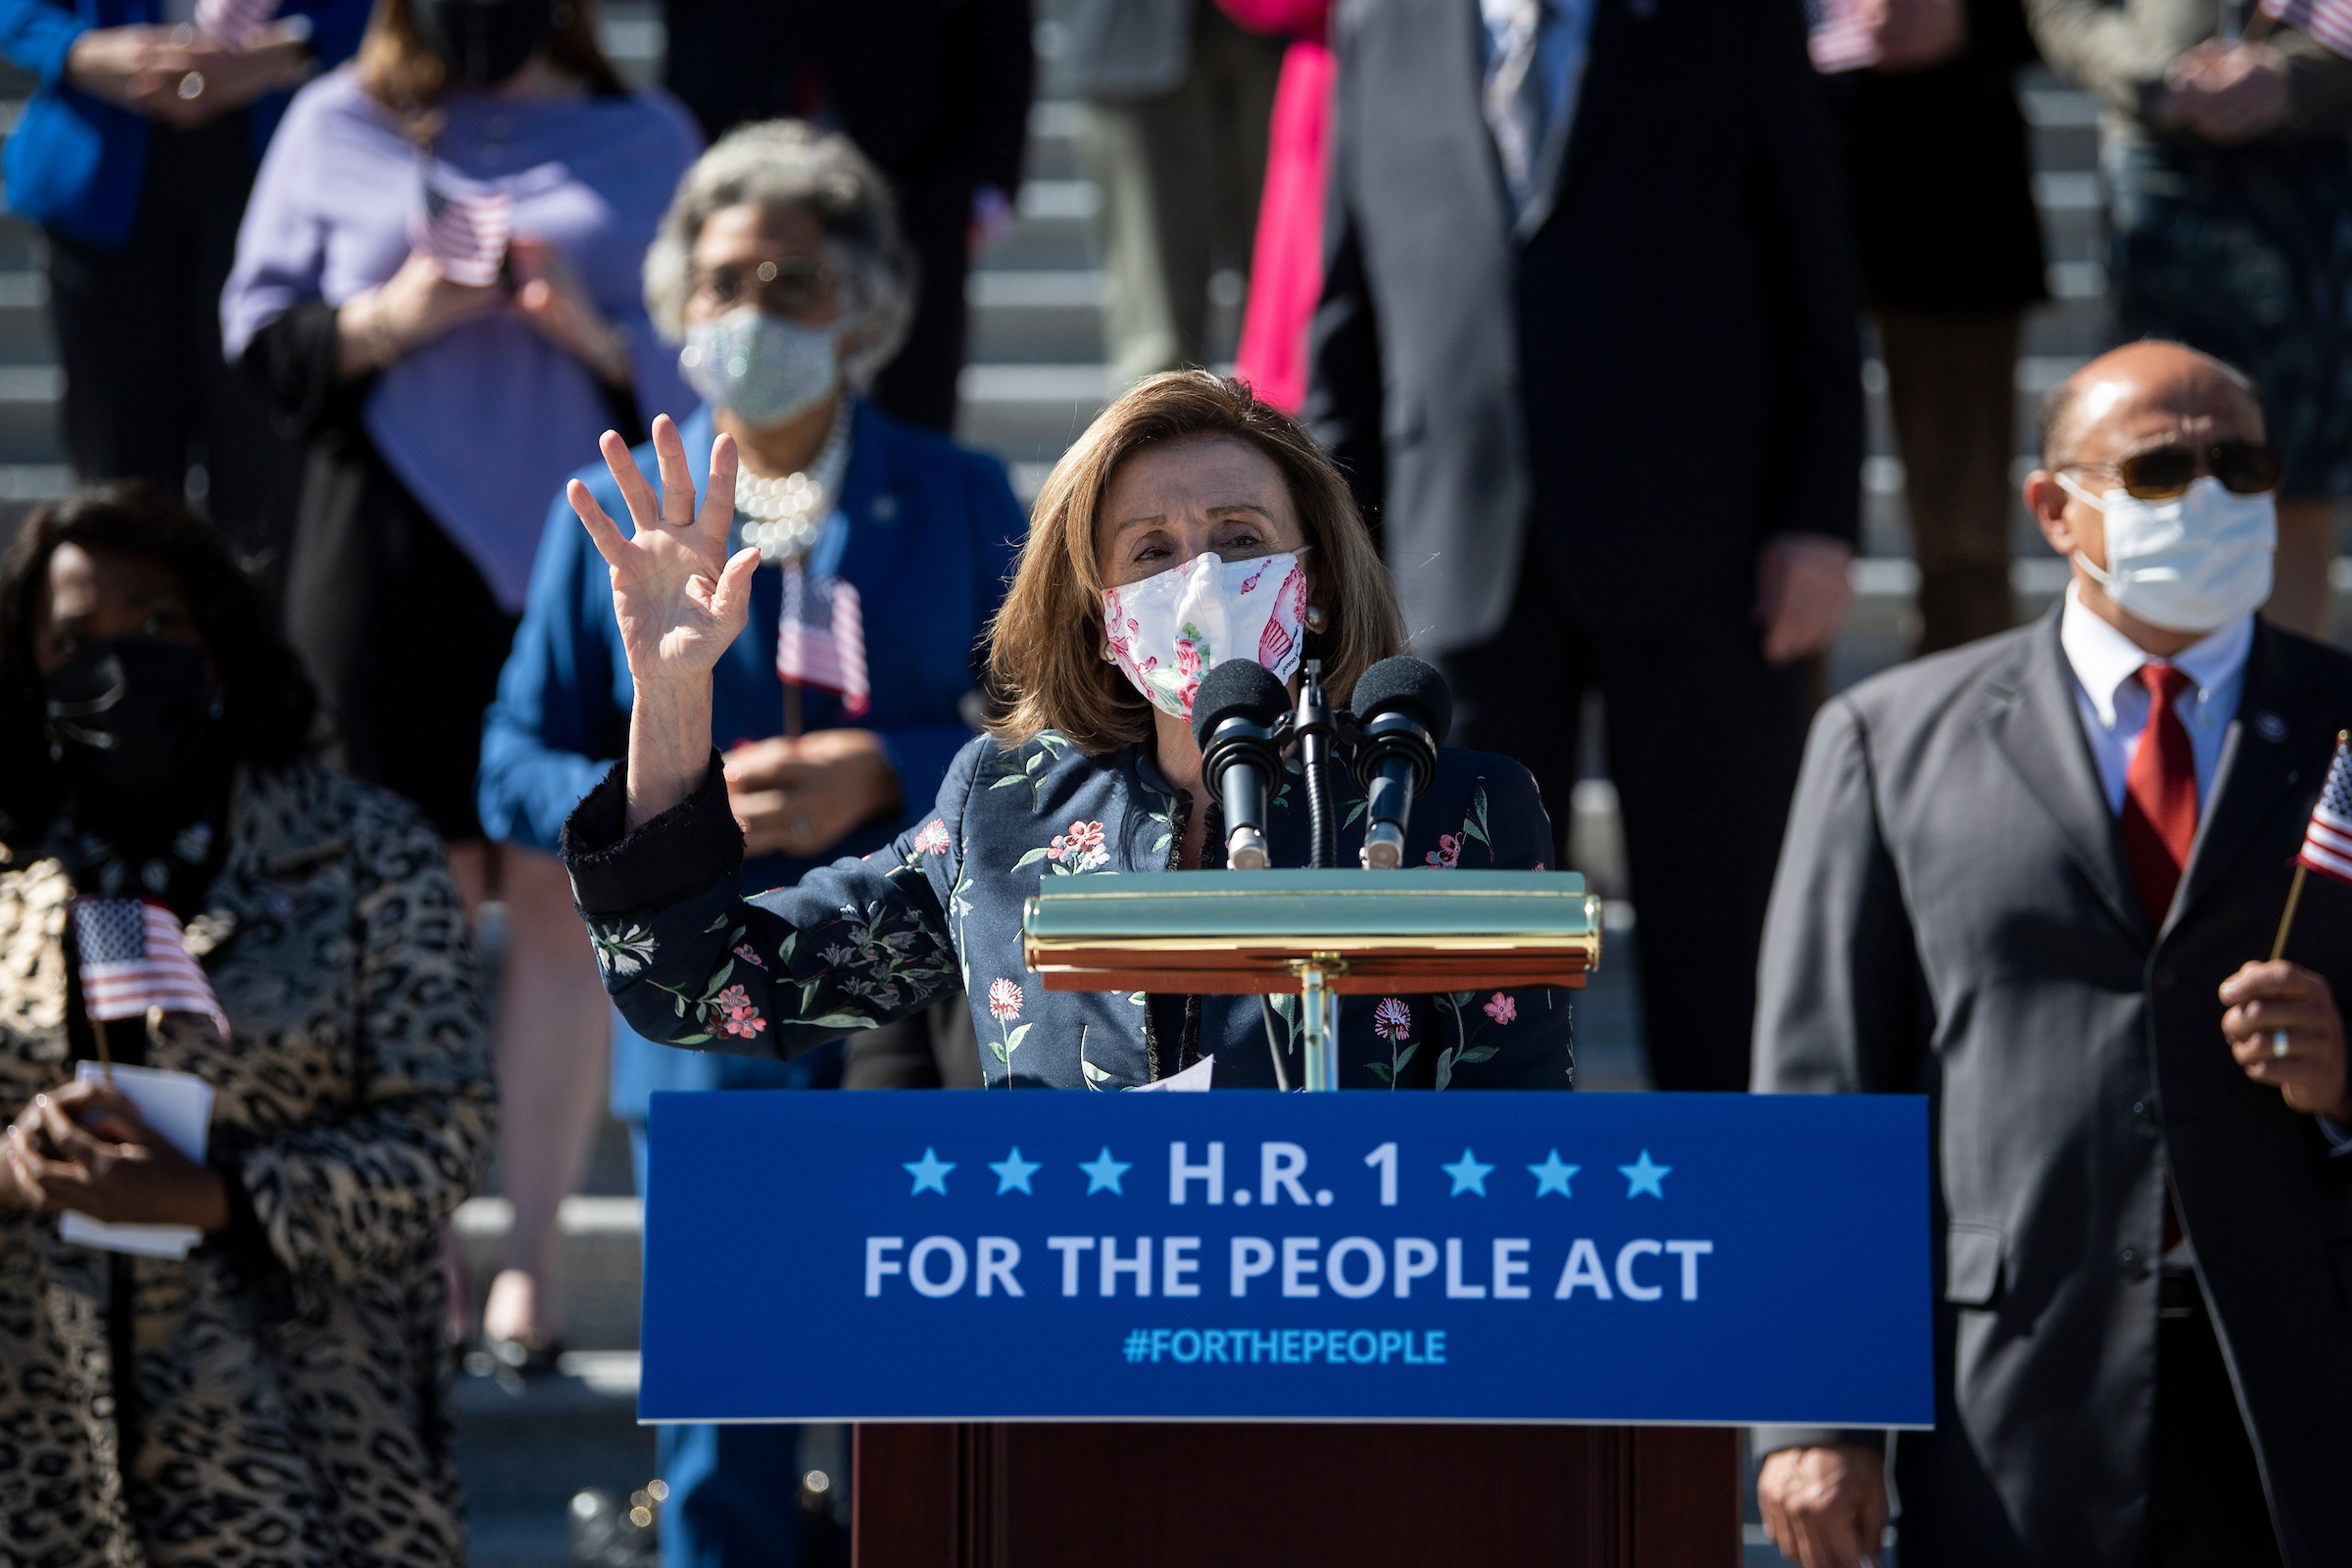 Speaker Nancy Pelosi talks at a news conference Wednesday with other House Democrats to discuss HR 1, which the chamber later passed 220-210. (Caroline Brehman/CQ Roll Call)